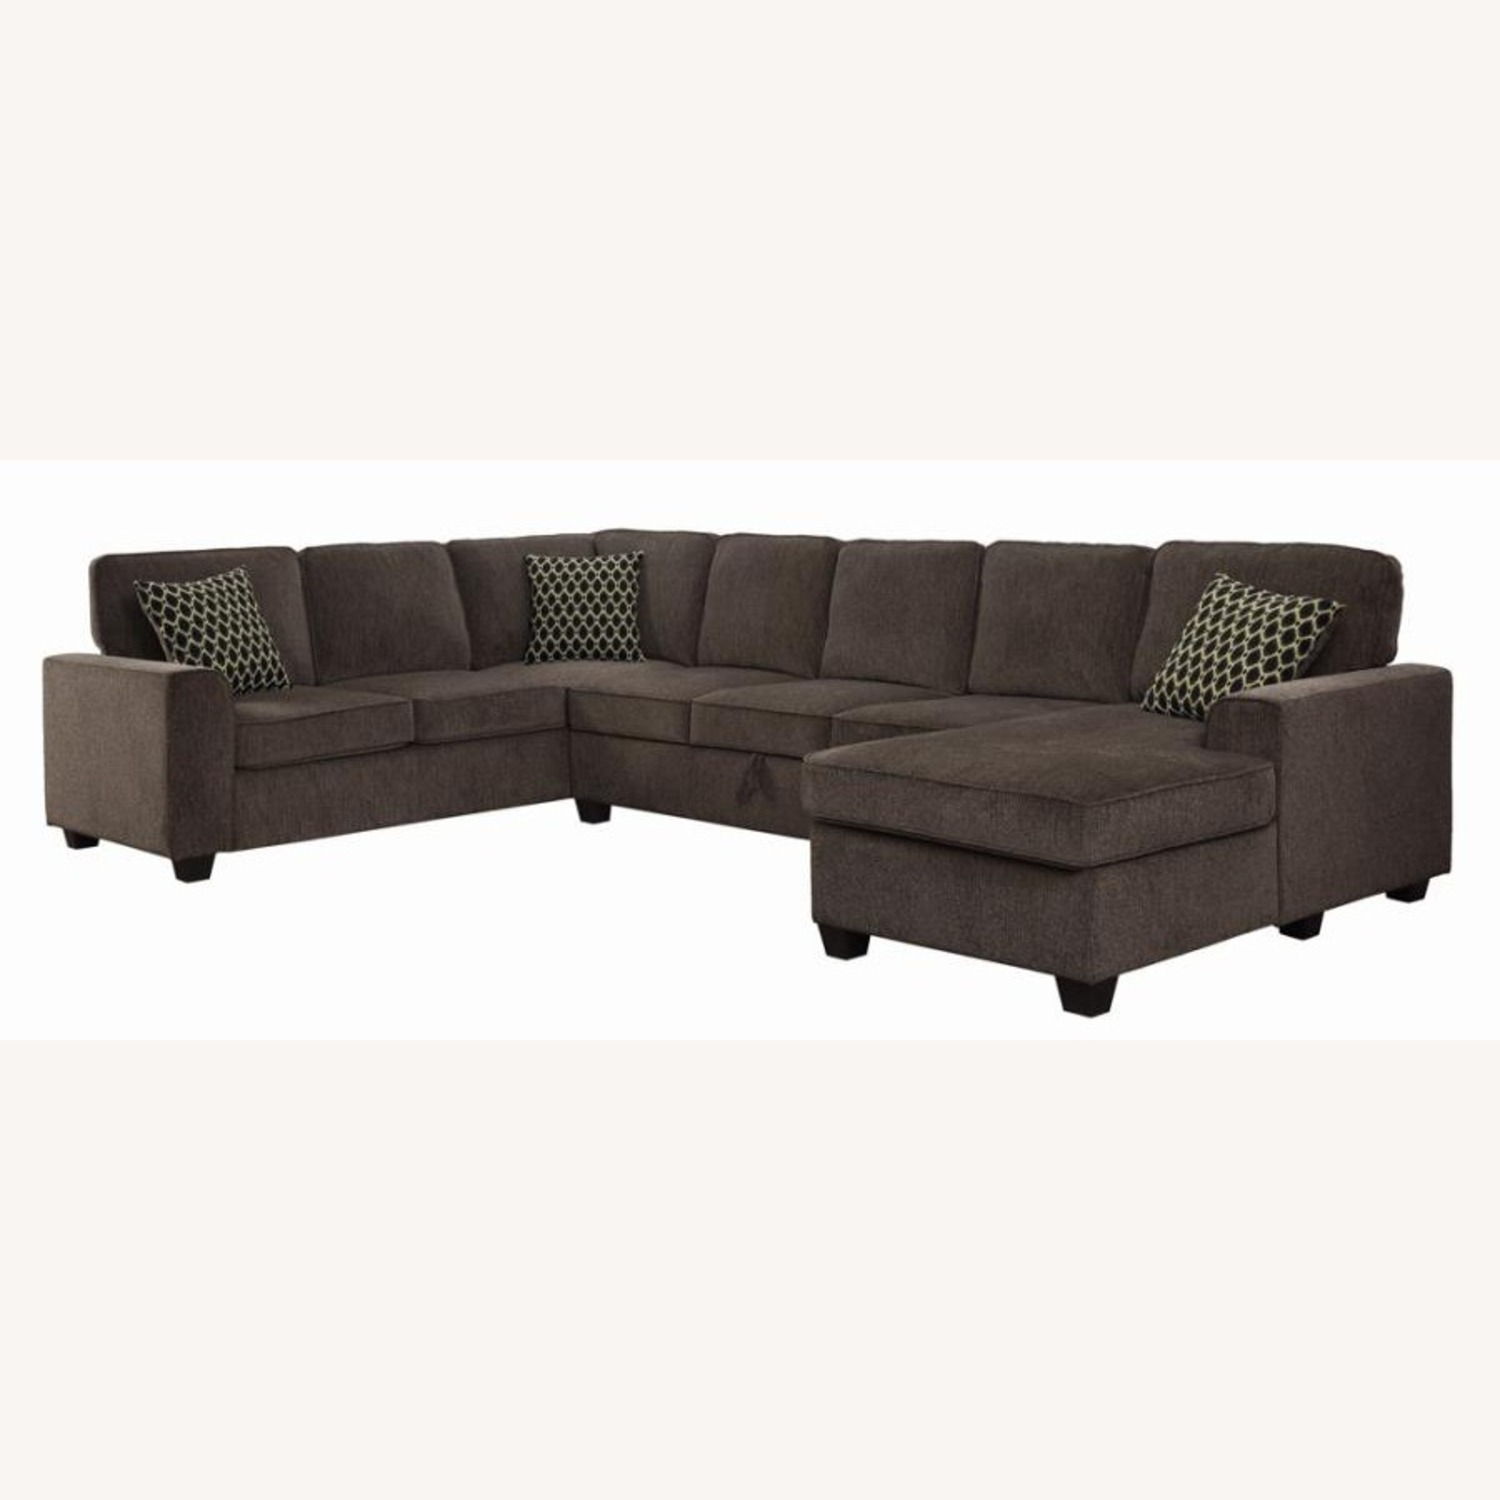 Sectional In Multi-Tonal Brown Chenille Upholstery - image-0